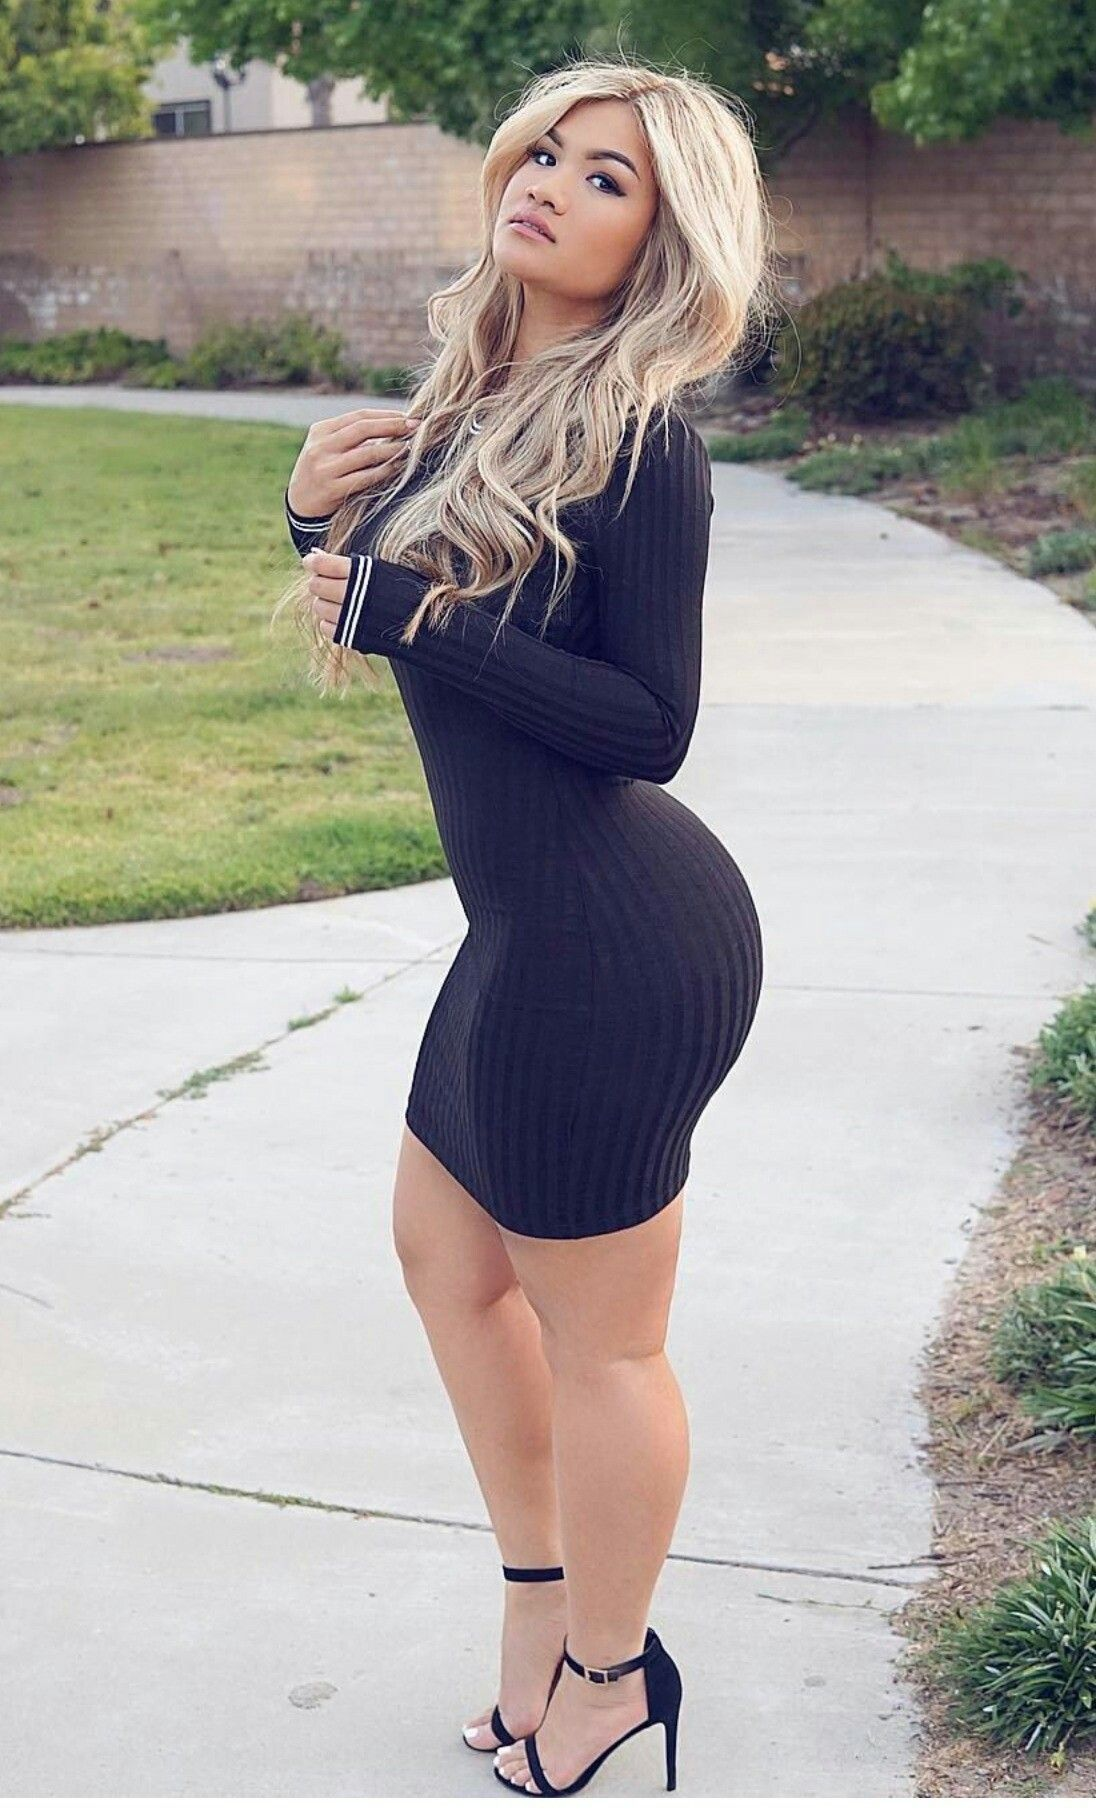 Lateysha Grace Shows Off Curvy Posterior In Tight Dress Days After Minidress Split